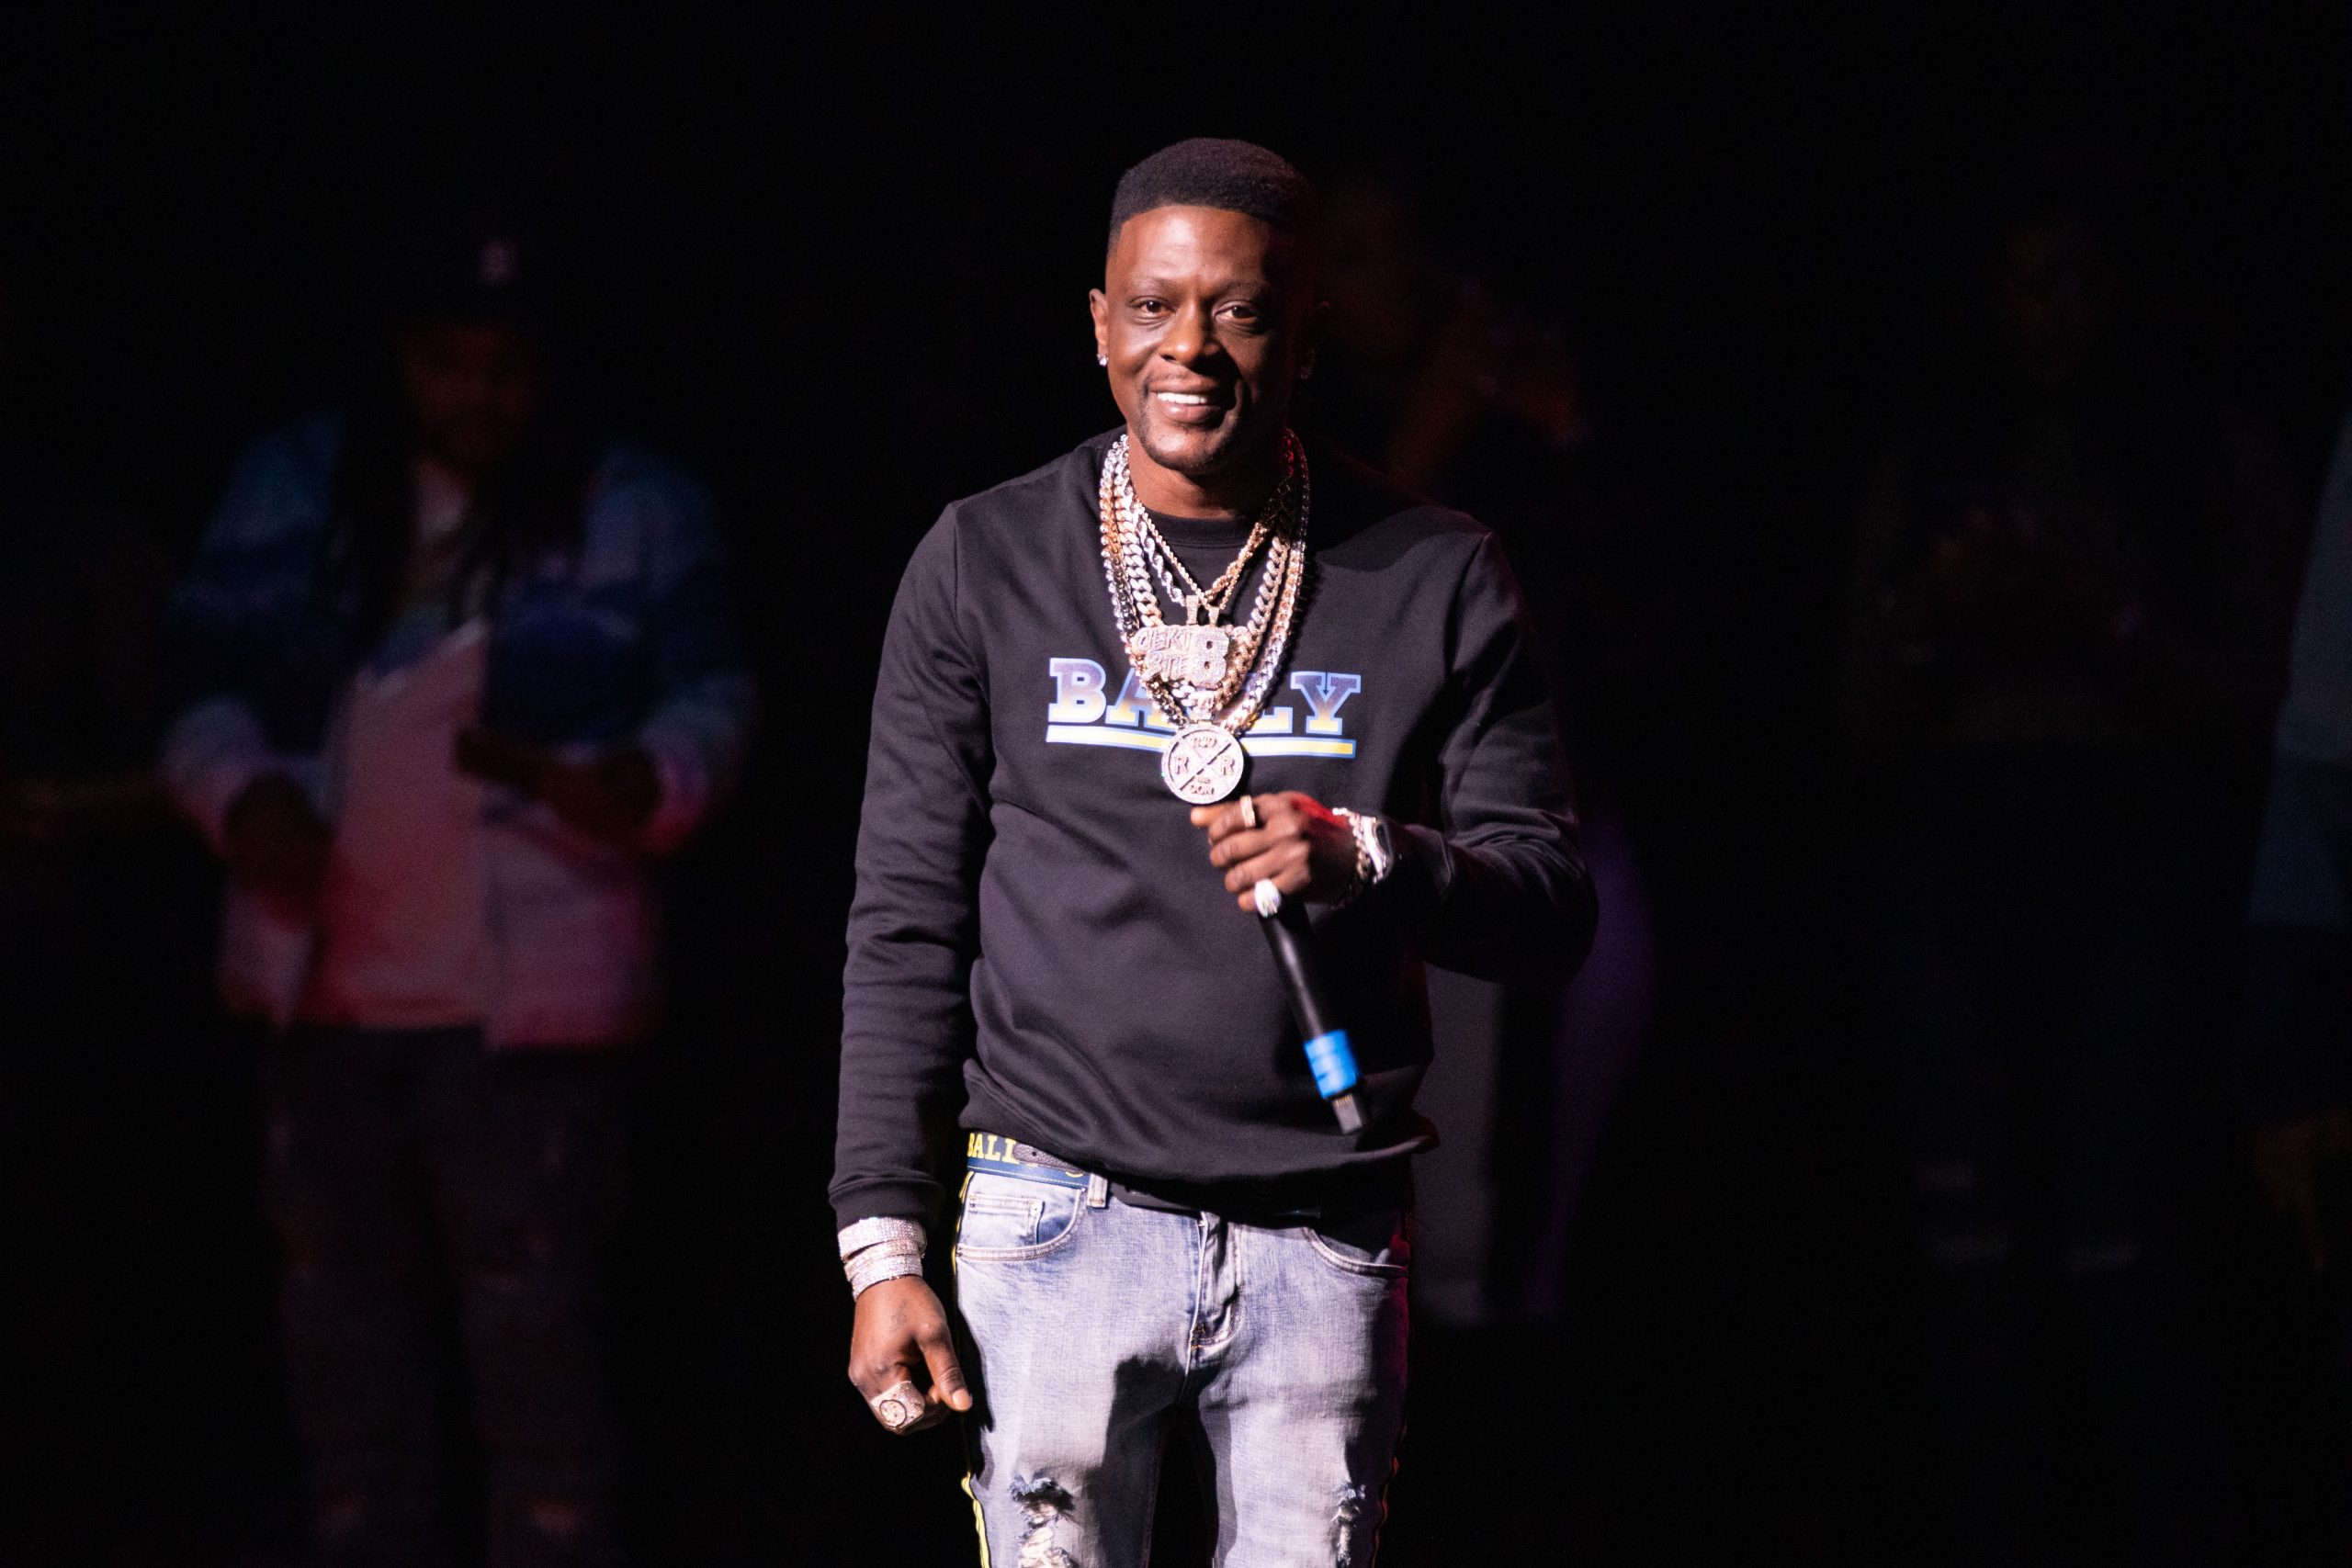 Yung Bleu Gifts Boozie Badazz $100K for Supporting Him